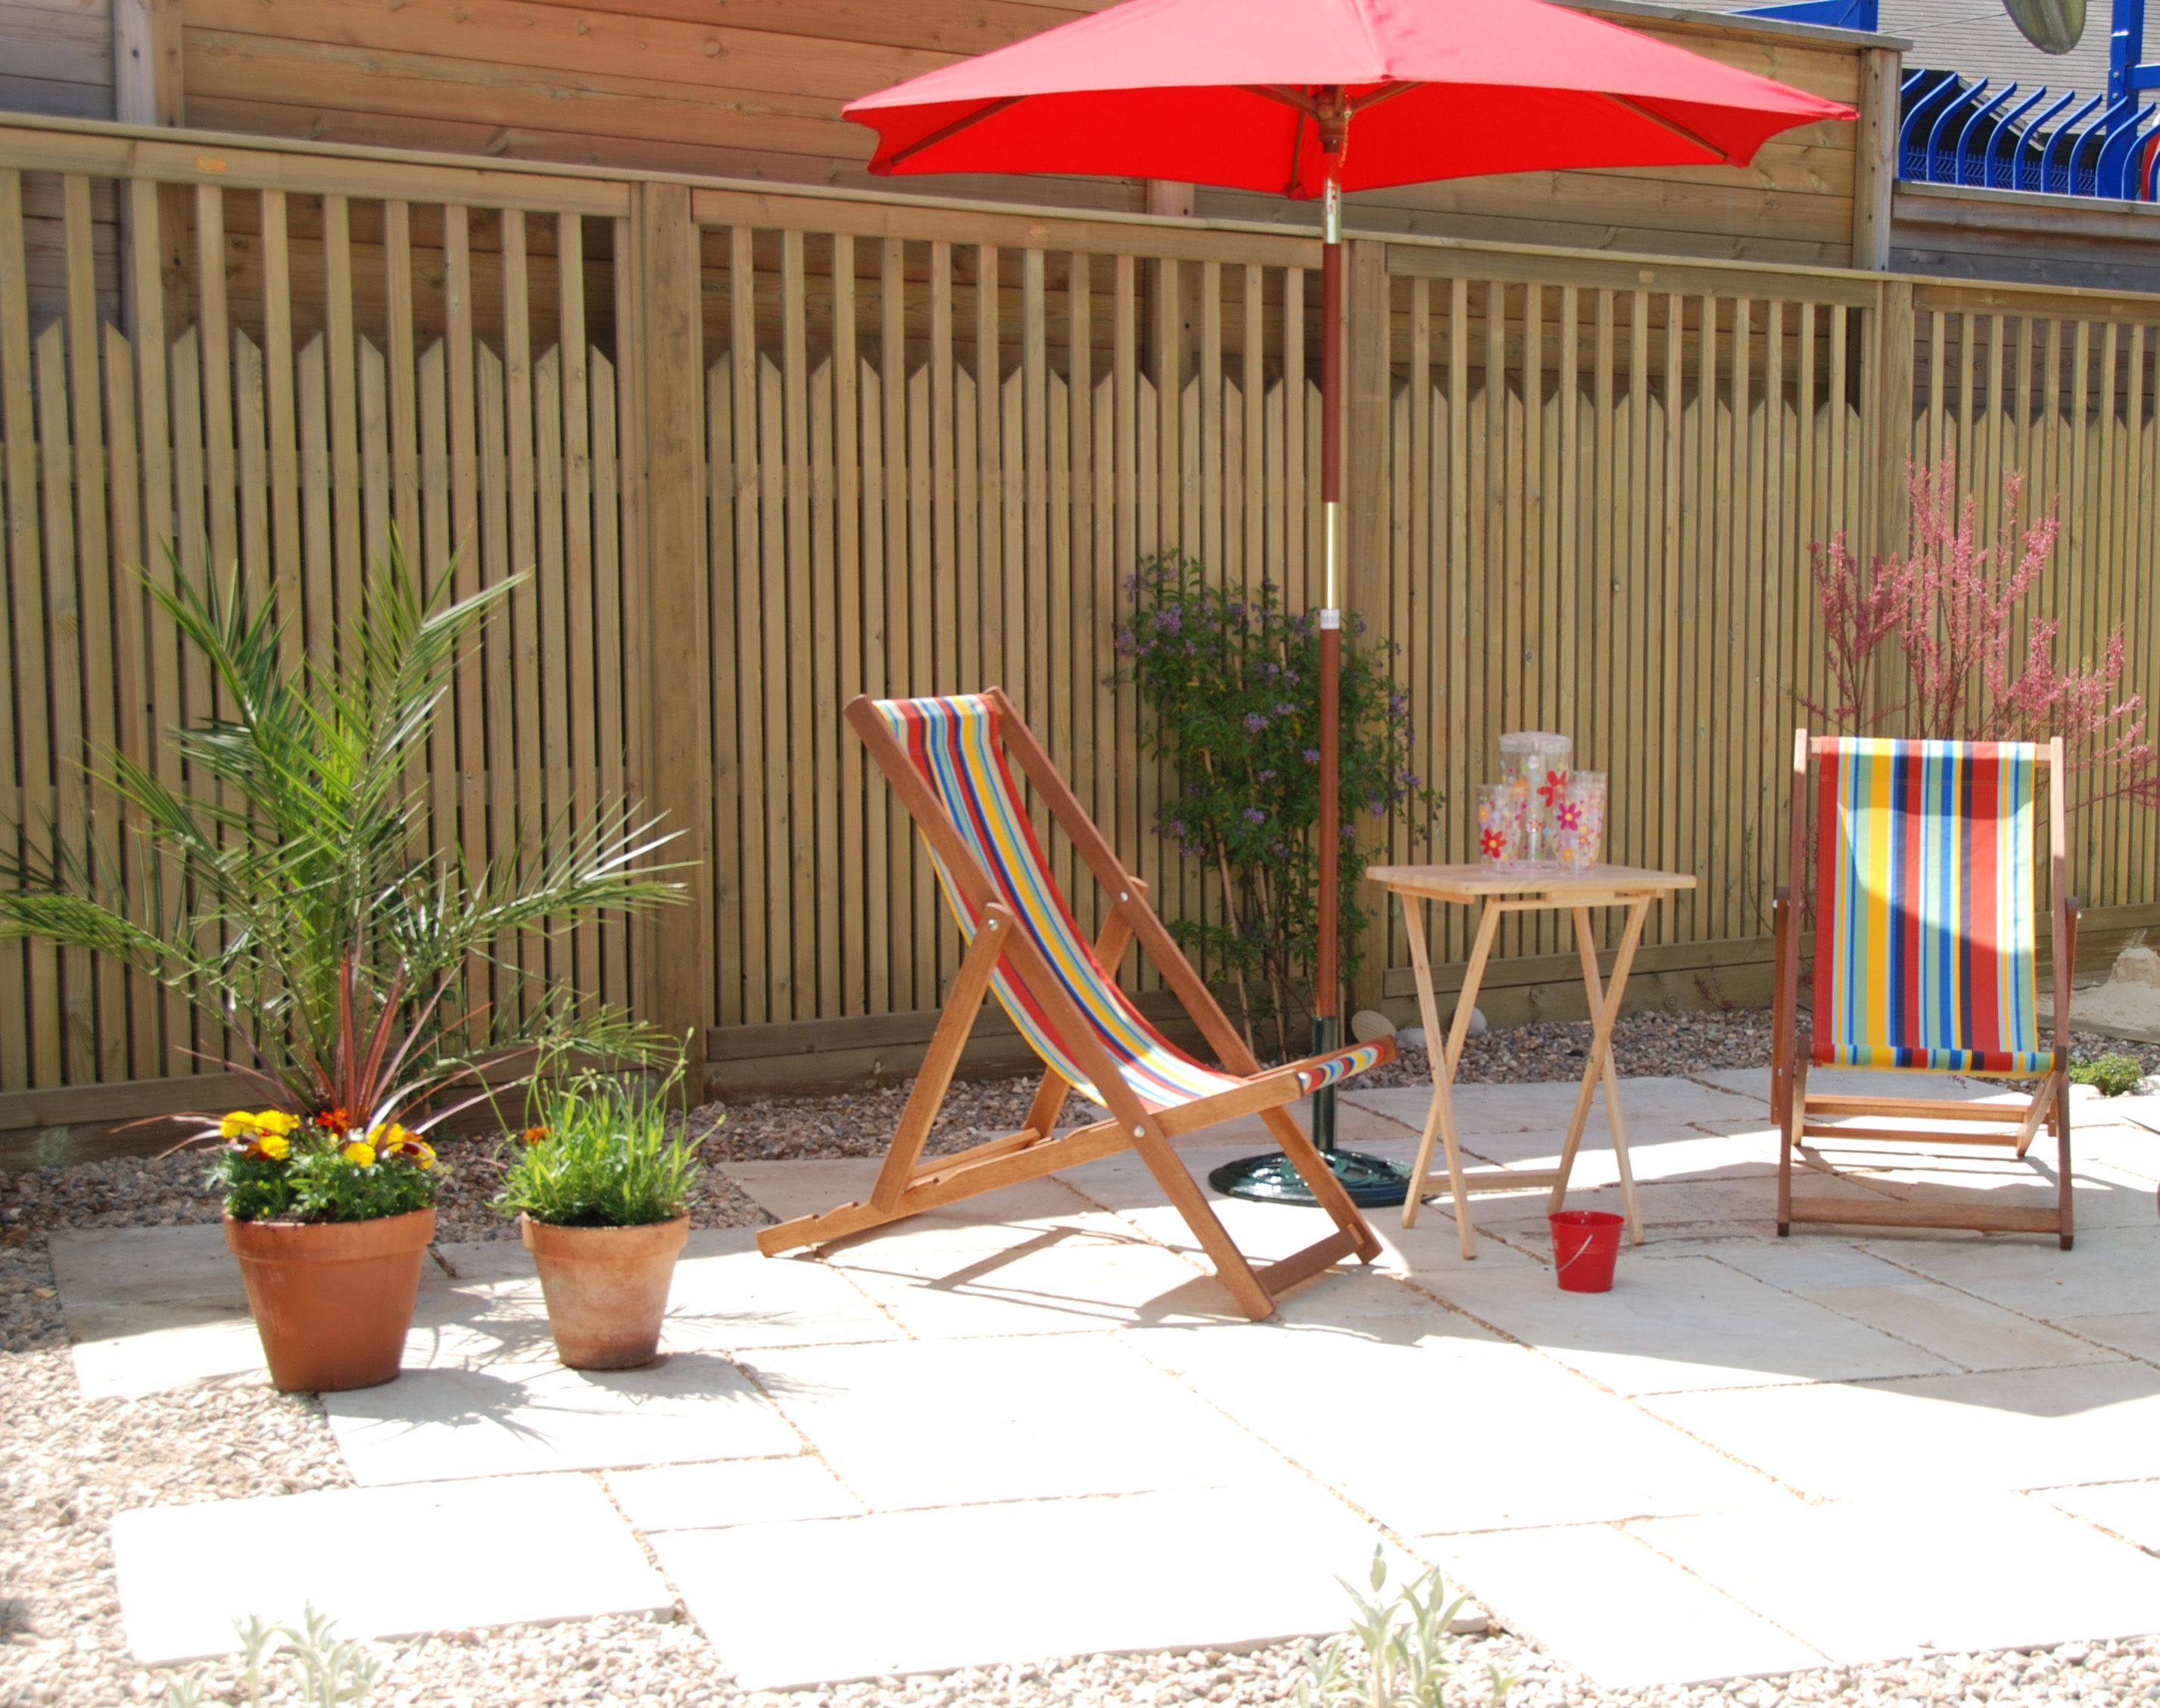 The Seaside Show Garden featuring Jacksons Paliframe. Inspiration ...